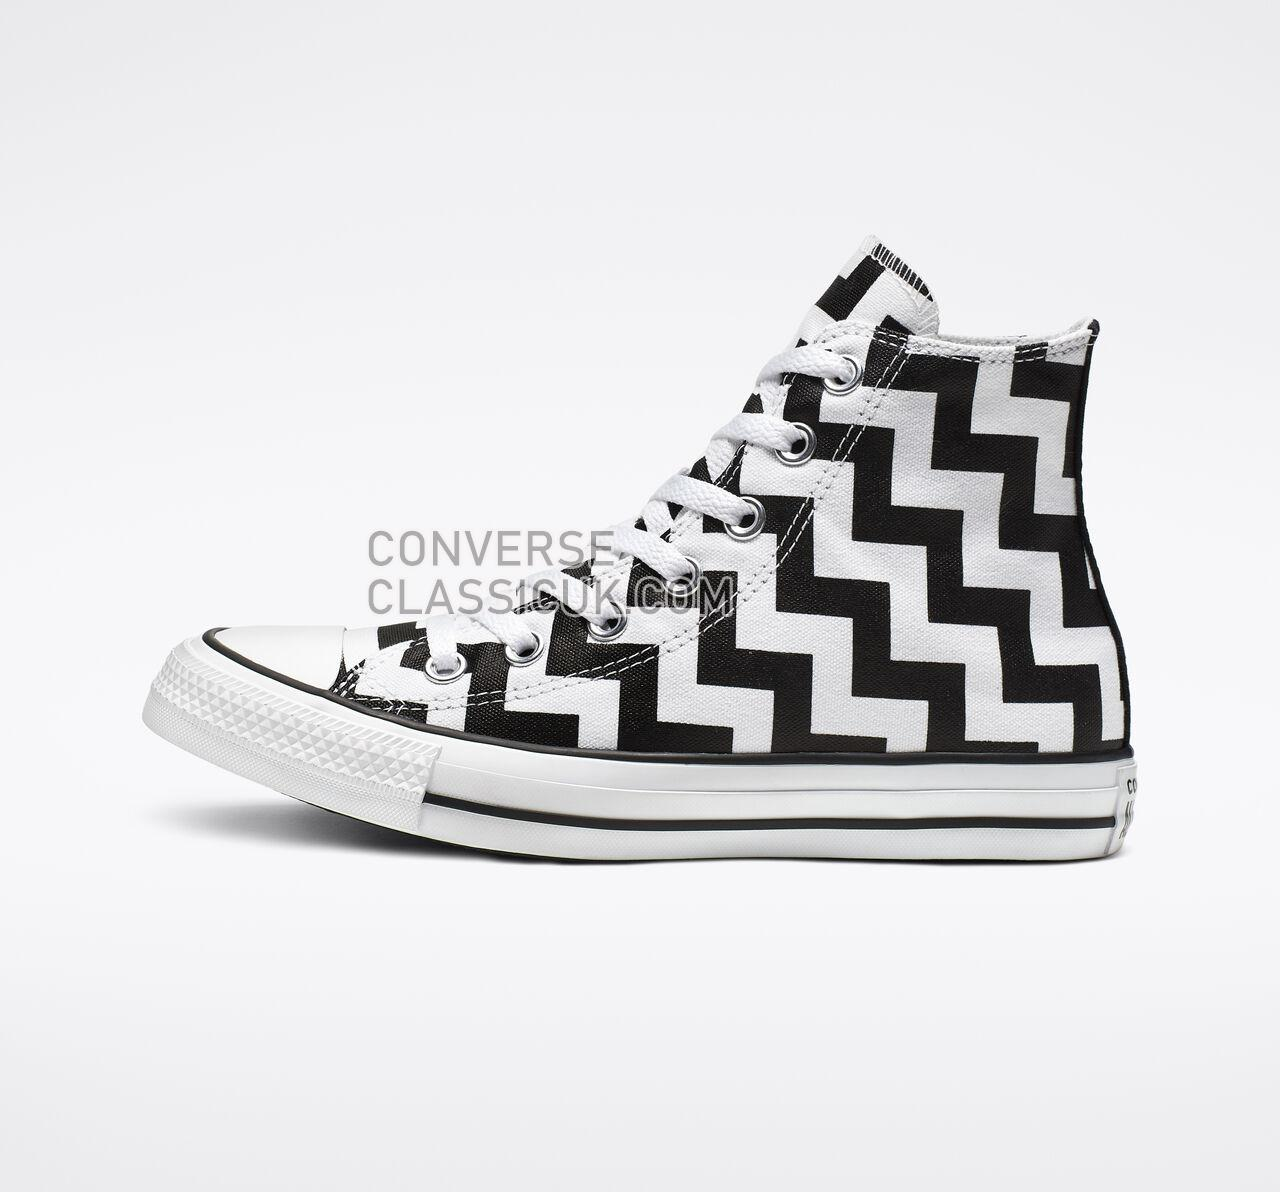 Converse Chuck Taylor All Star Glam Dunk High Top Womens 565213F White/Black/White Shoes